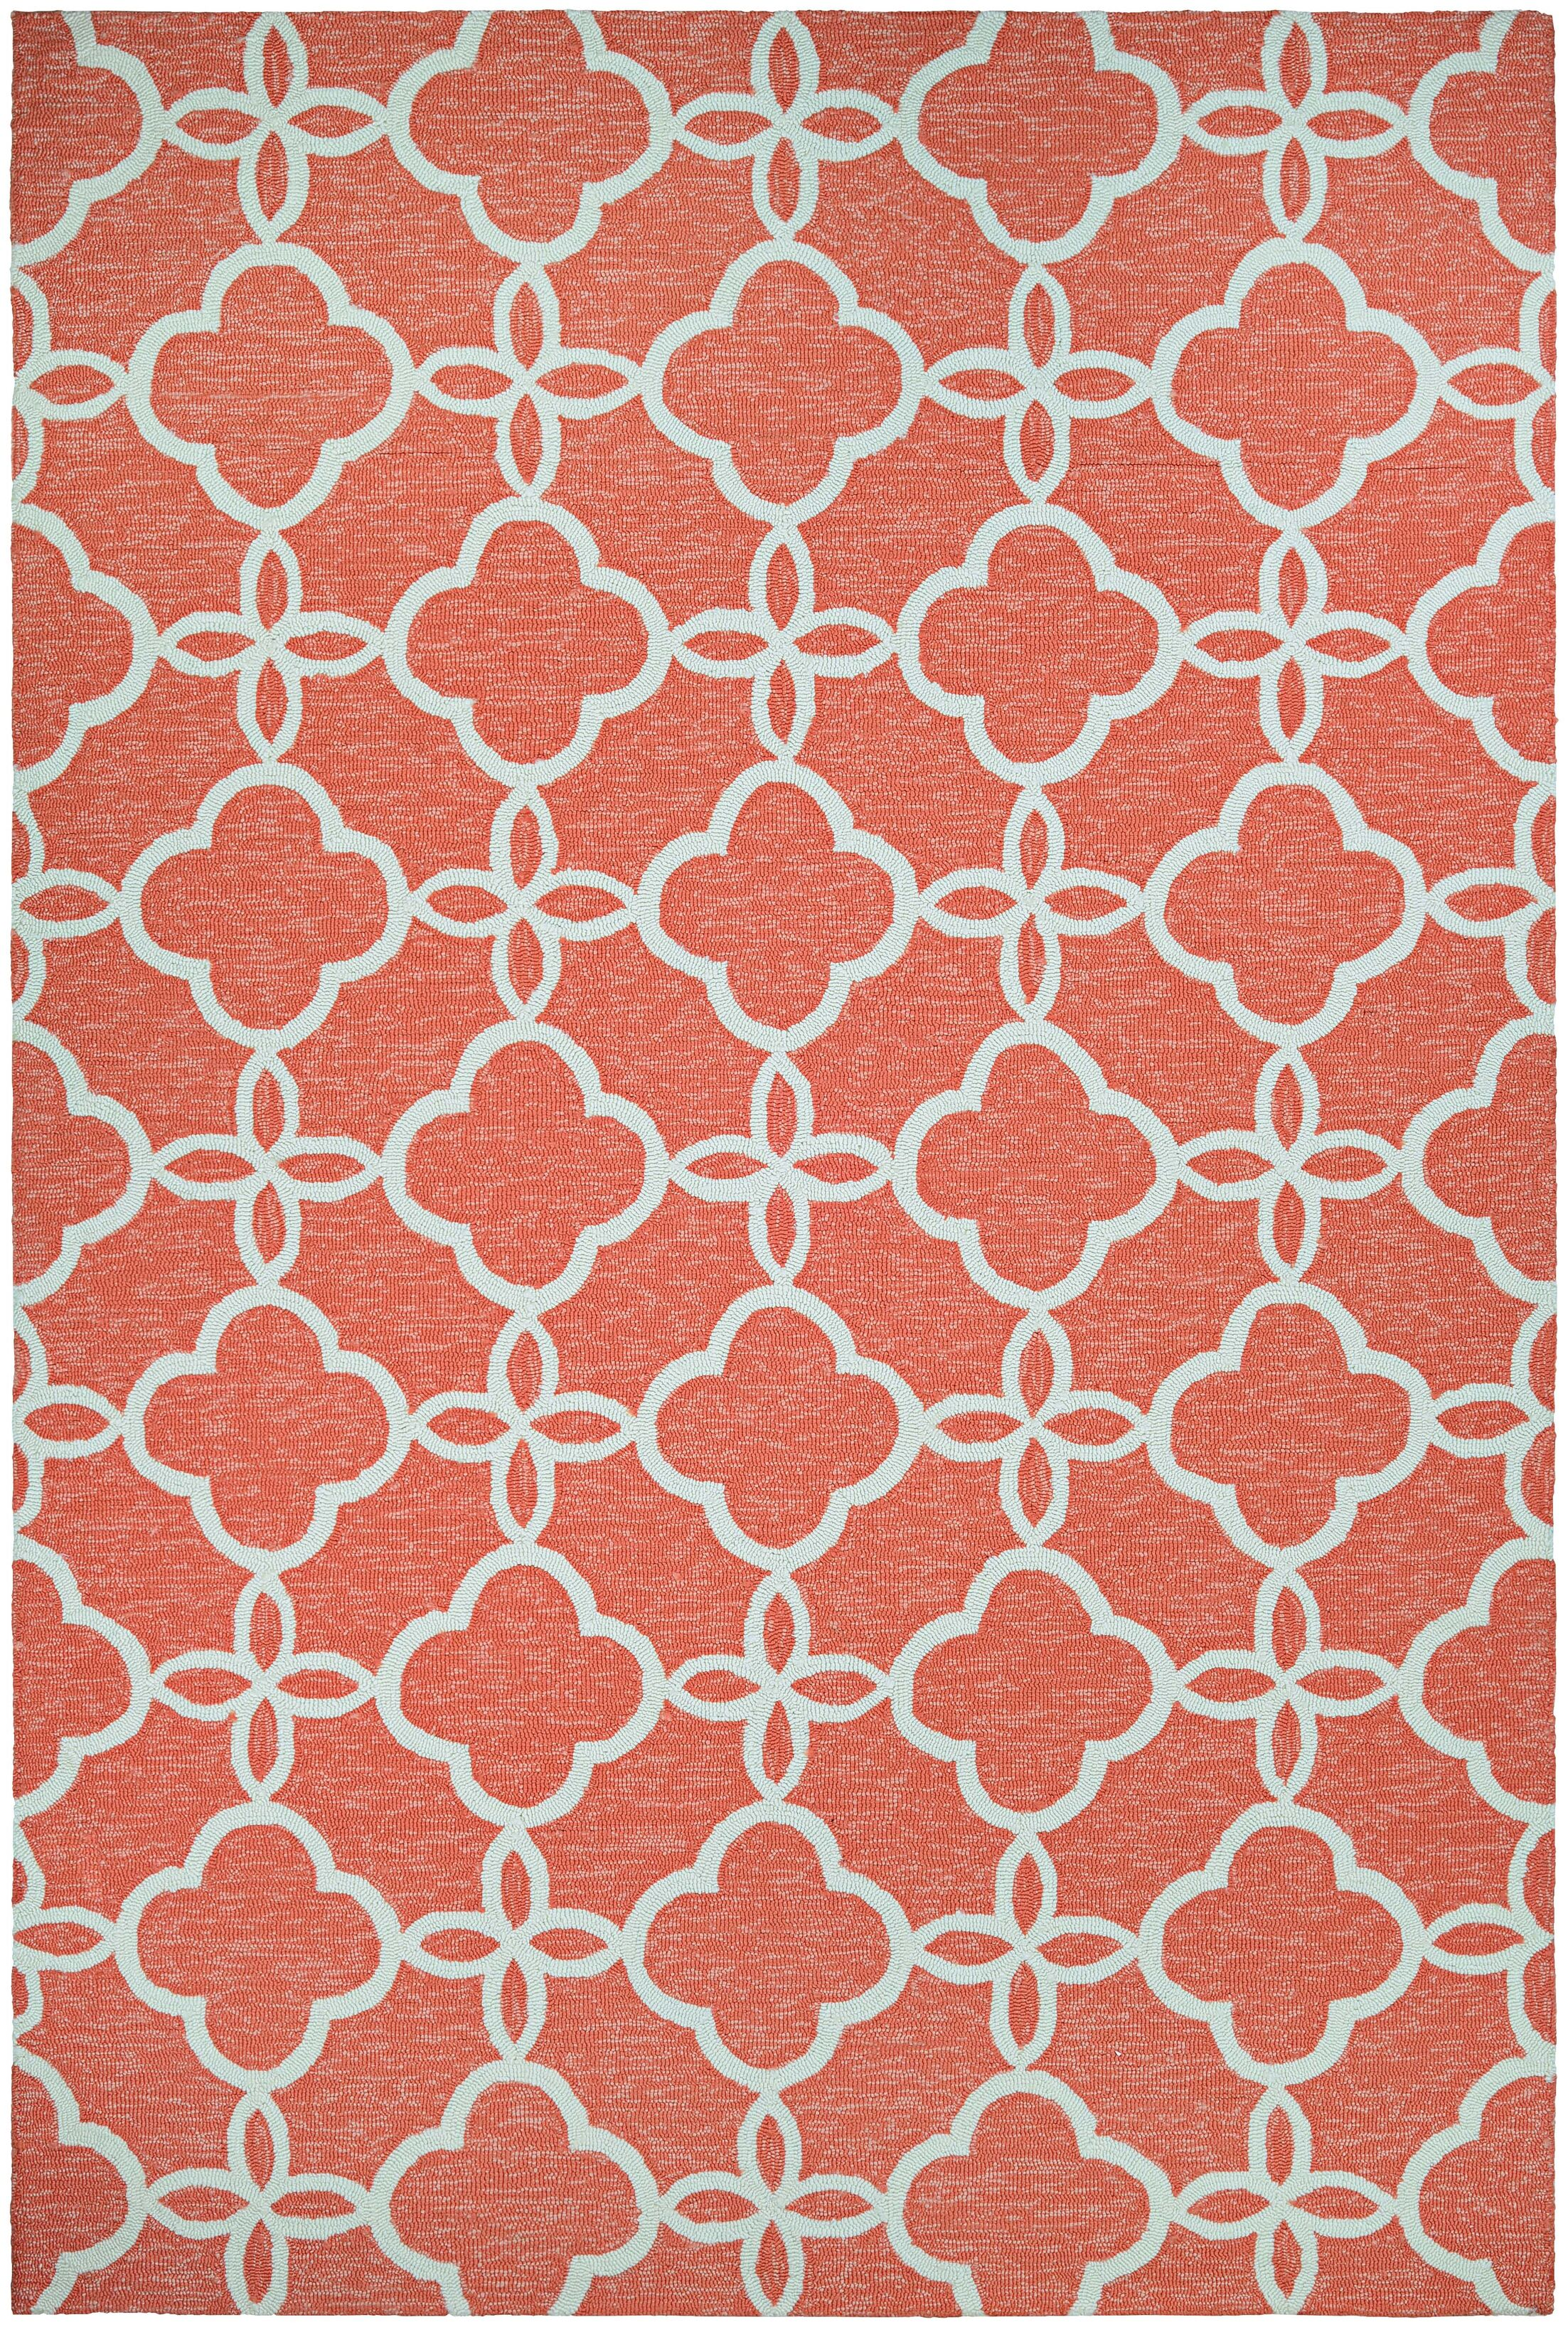 Locklin Hand-Knotted Indoor/Outdoor Area Rug Rug Size: Rectangle 5'6